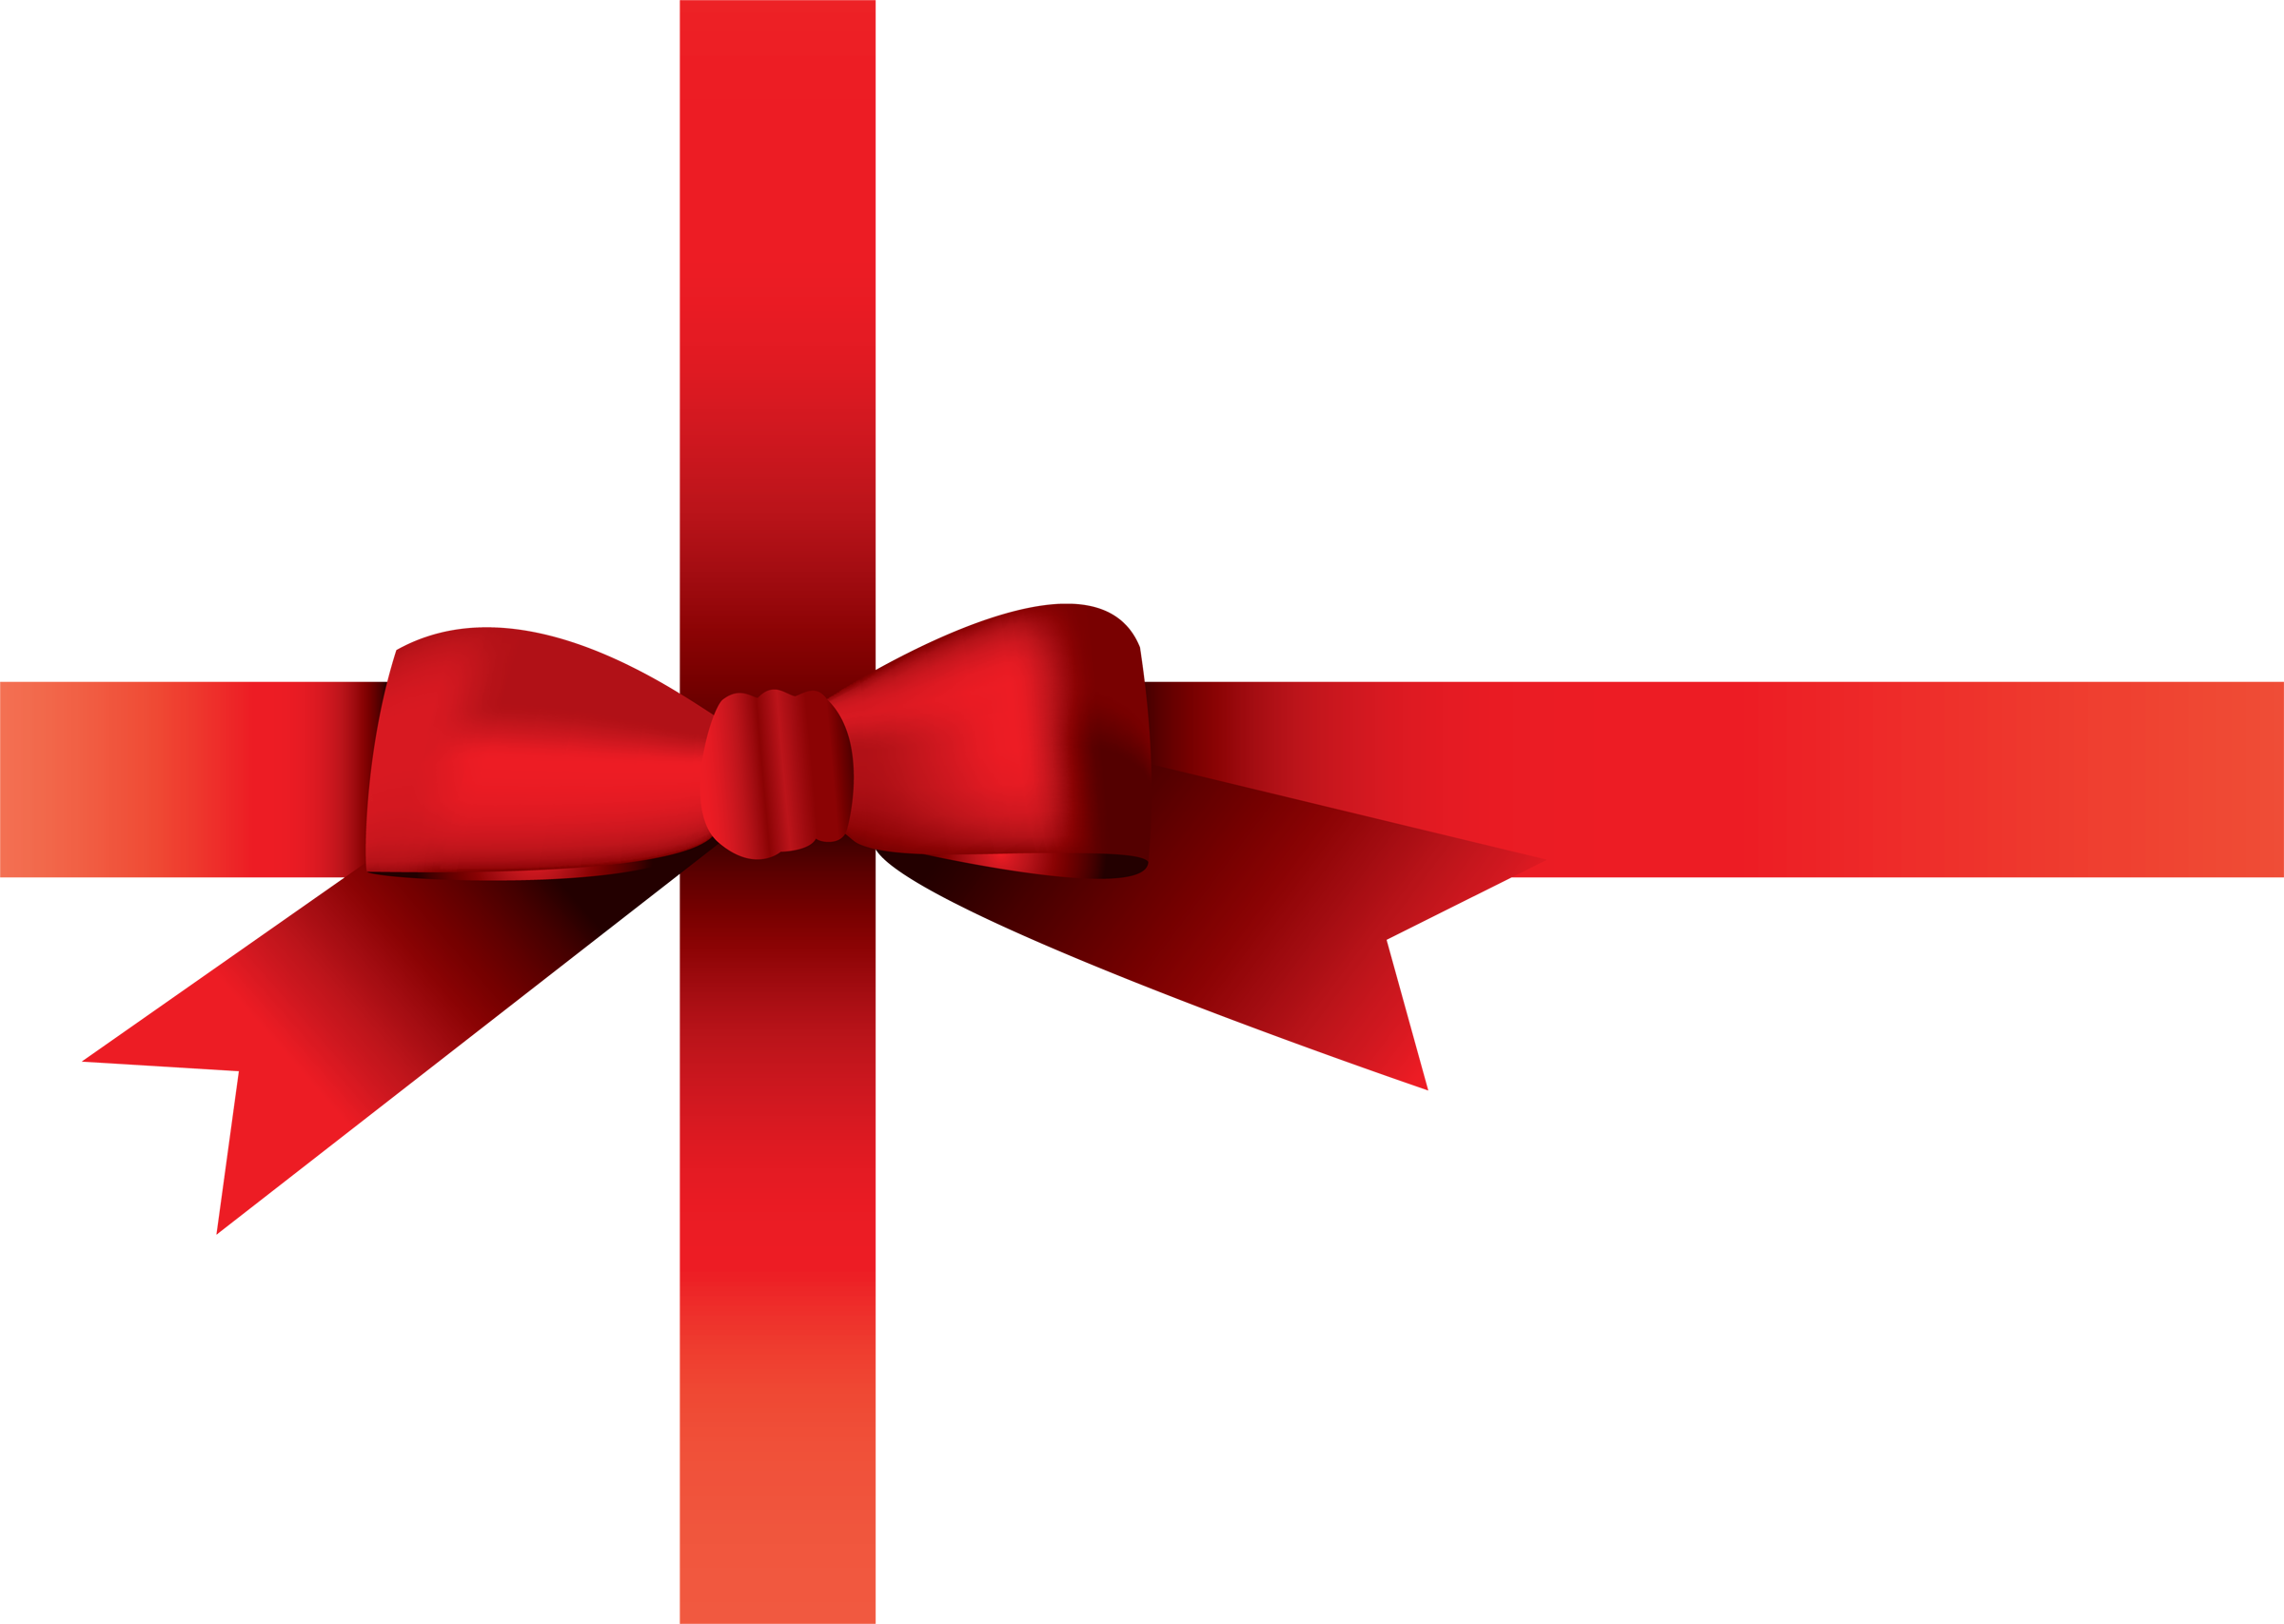 Download Christmas Bow Transparent Background Hq Png Image